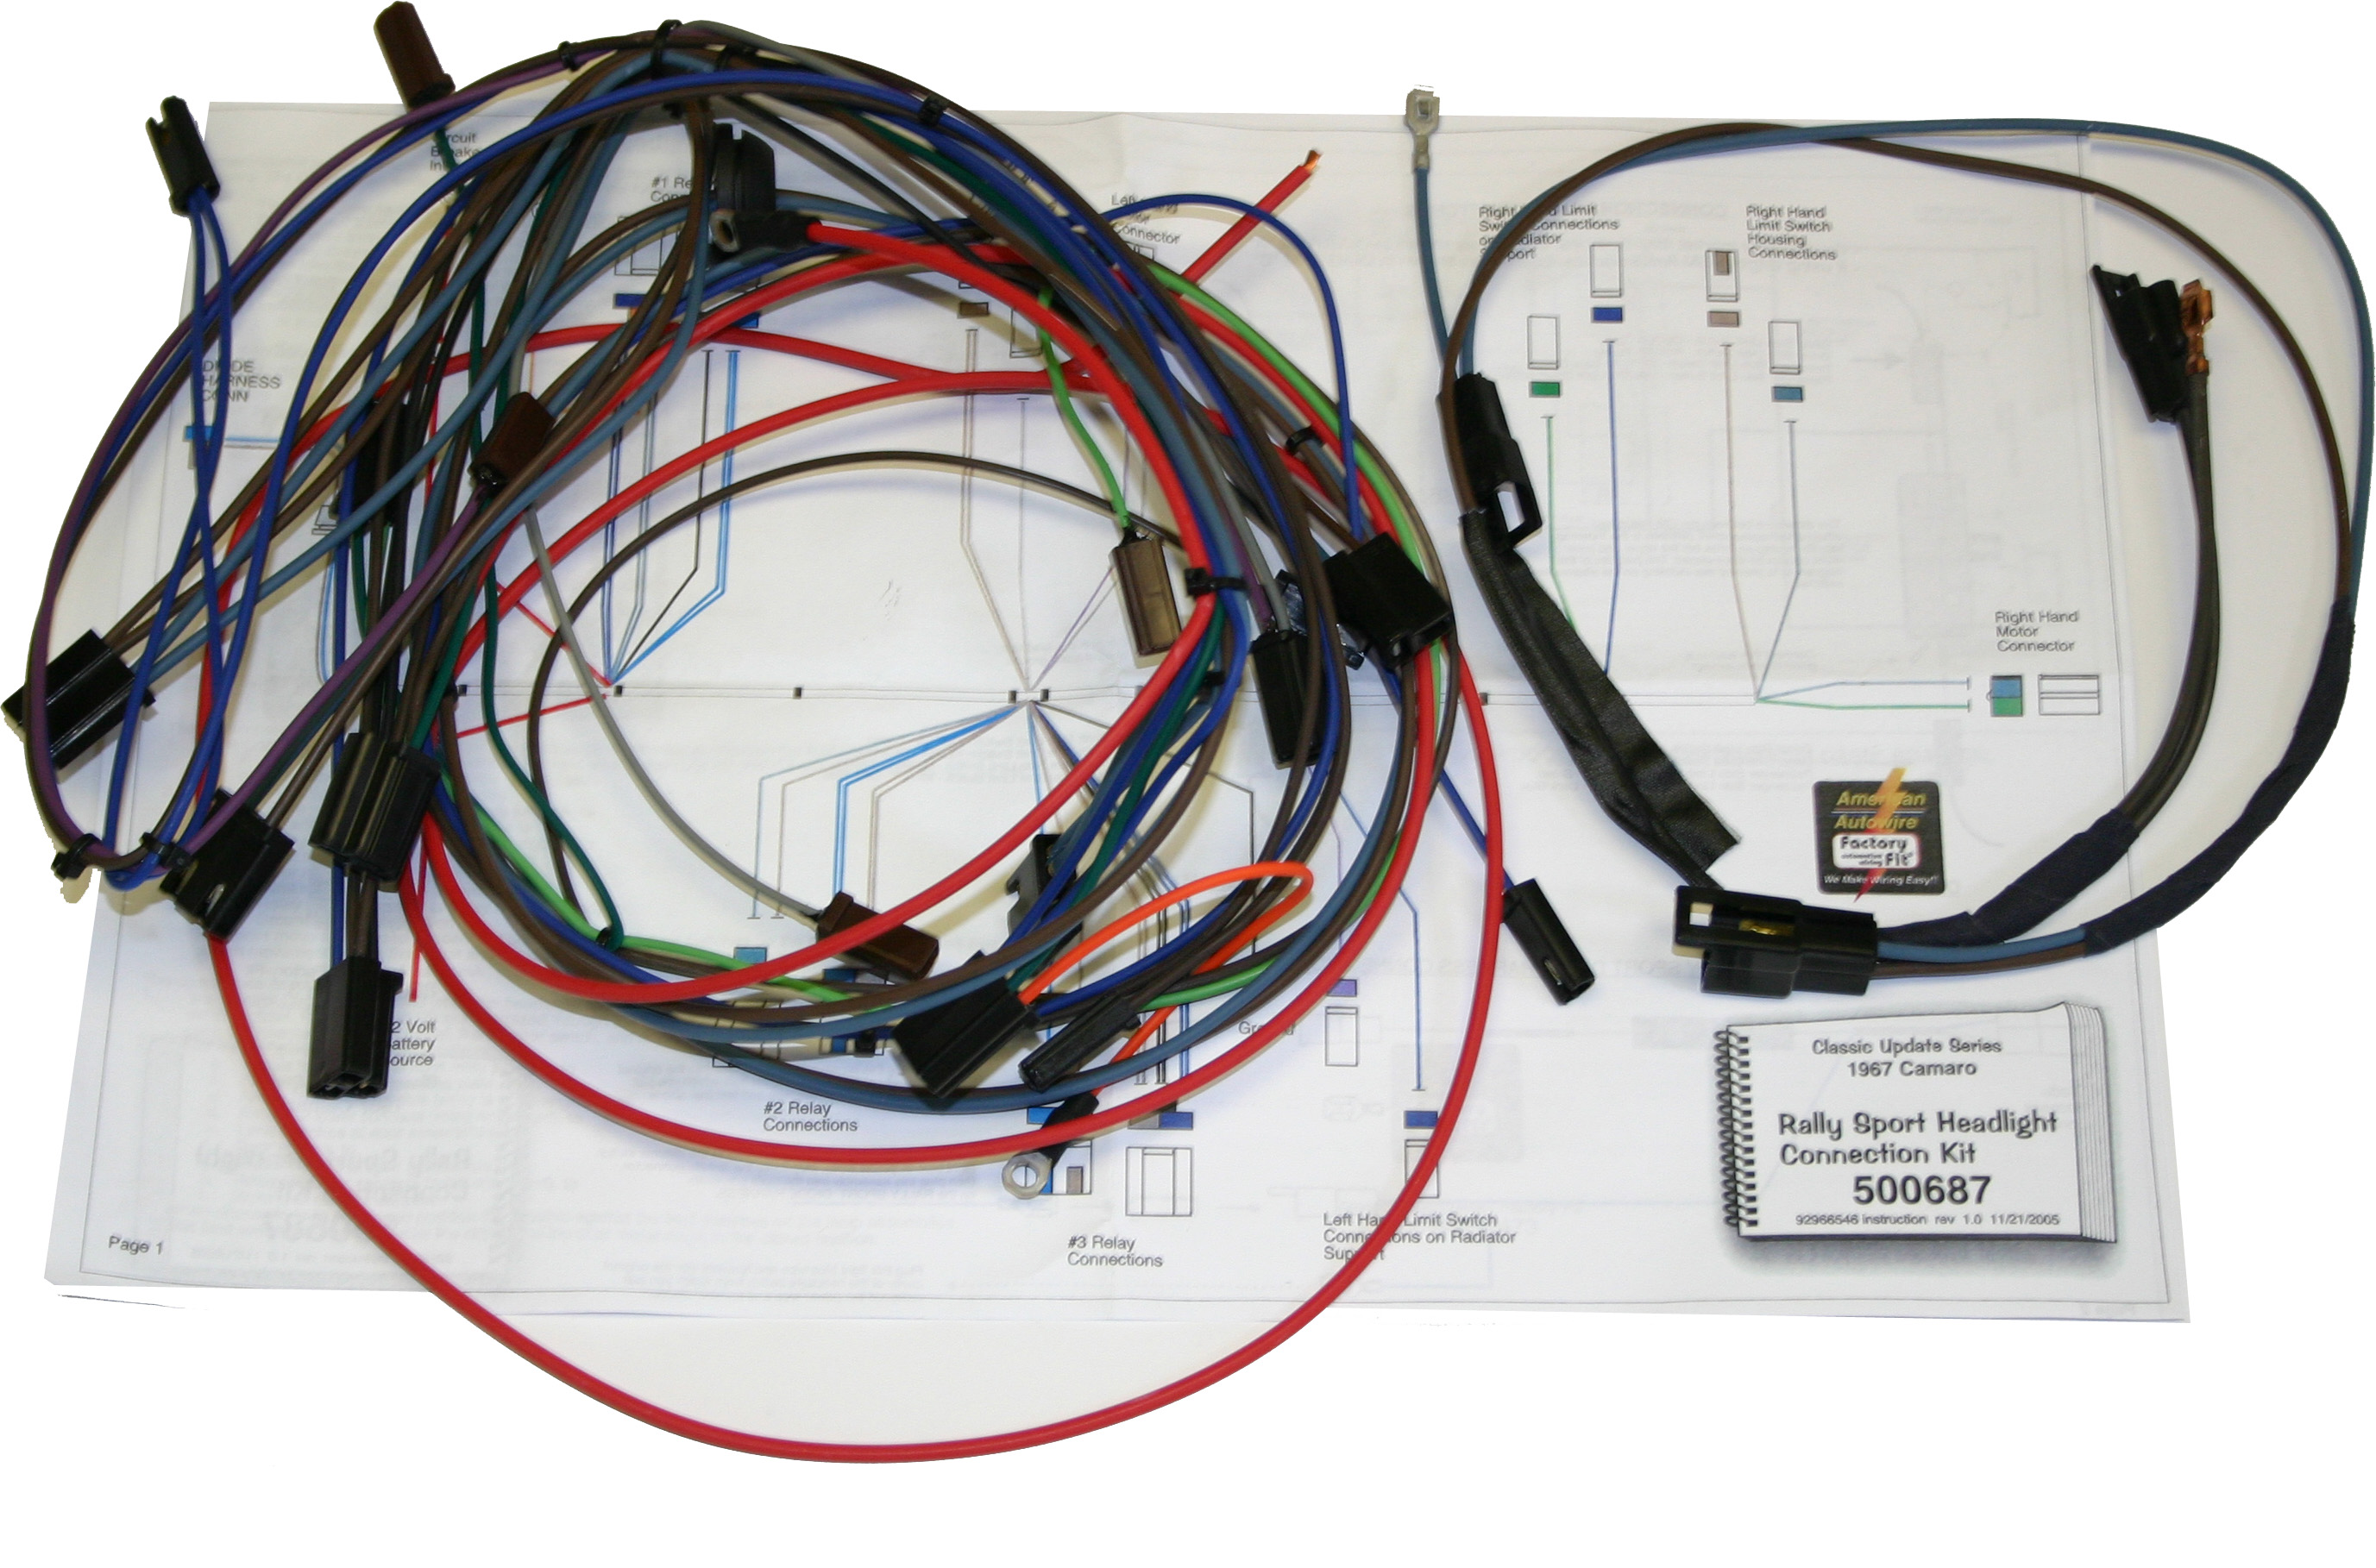 500773 67 68 camaro firebird classic update wiring harness 500661 american wire wiring harness at gsmx.co